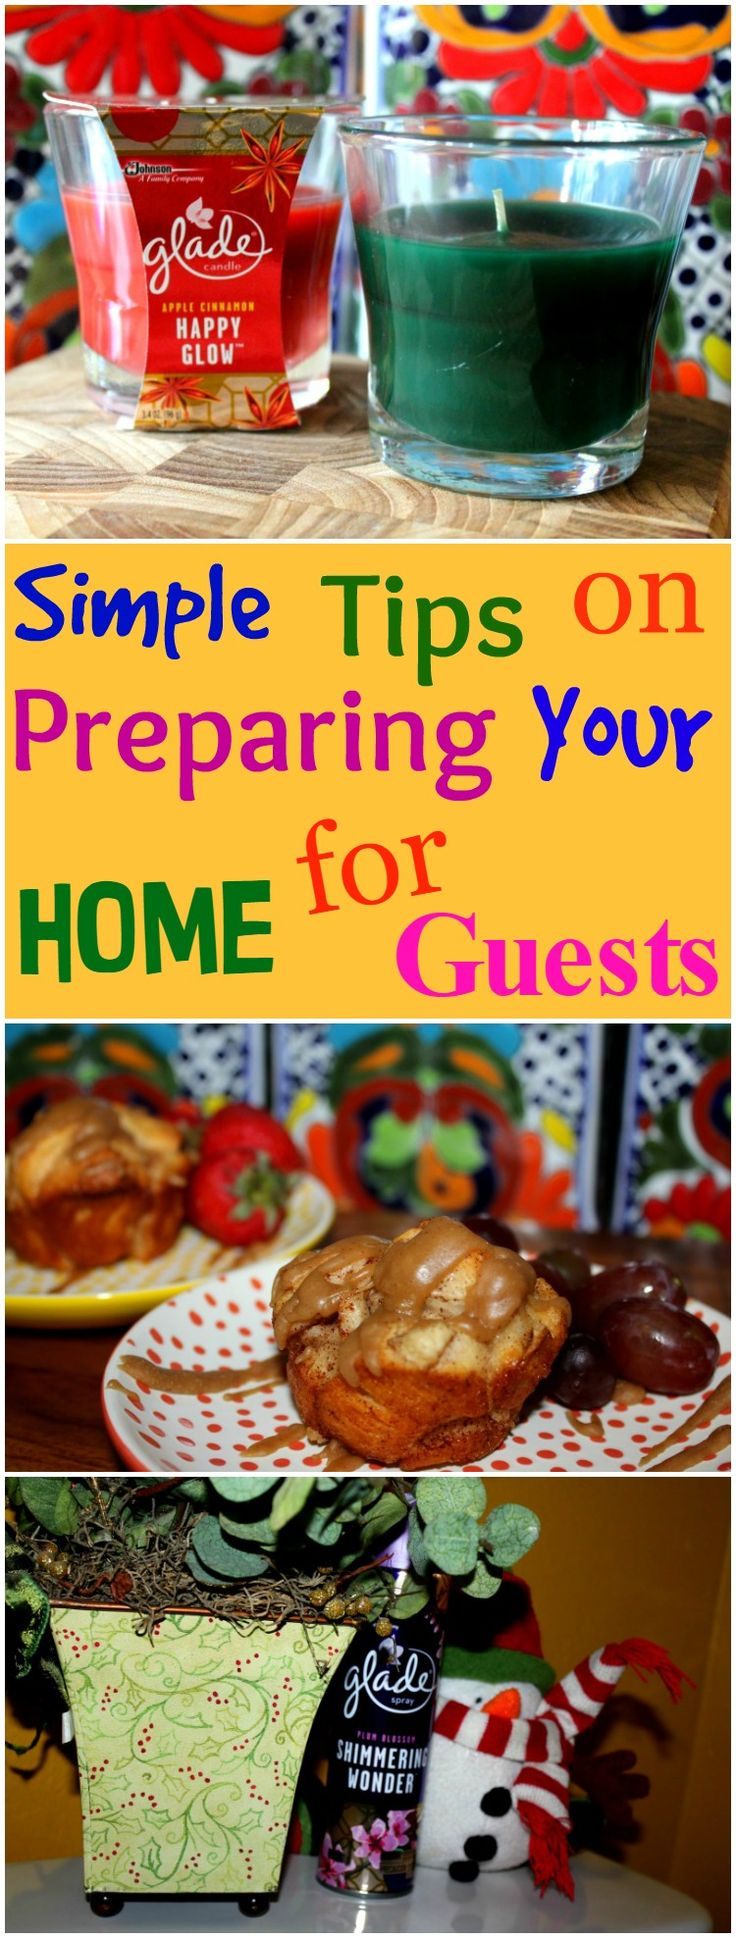 It is important to make your guests feel comfortable when they stay with you. Here are simple tips that will make your guests feel at home.#ad #gladeholidayjoy